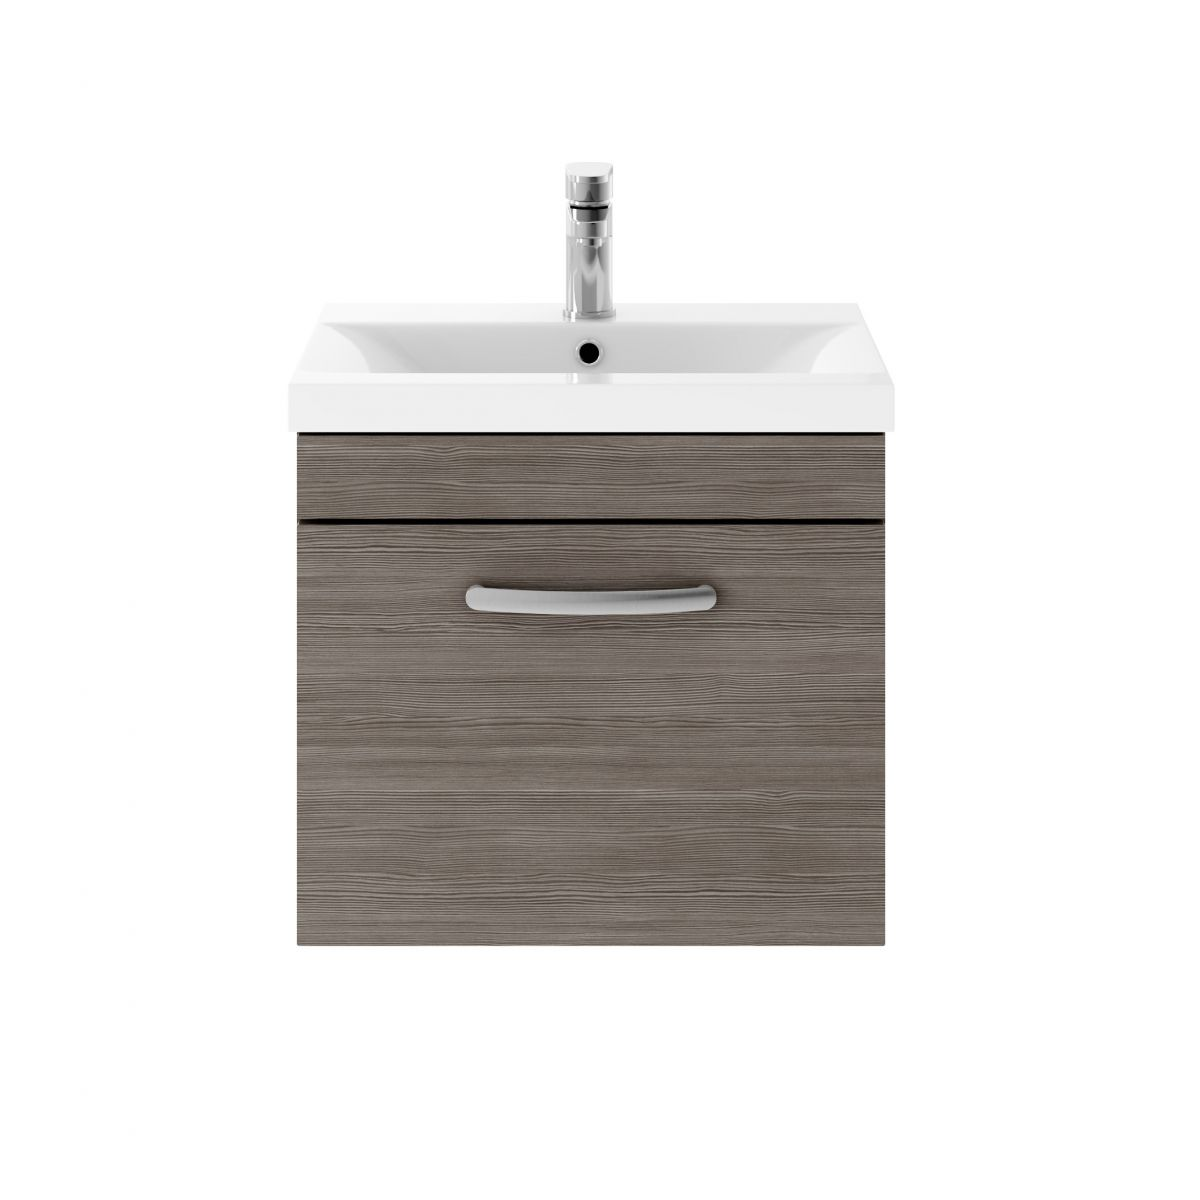 Nuie Athena Grey Avola 1 Drawer Wall Hung Vanity Unit 500mm